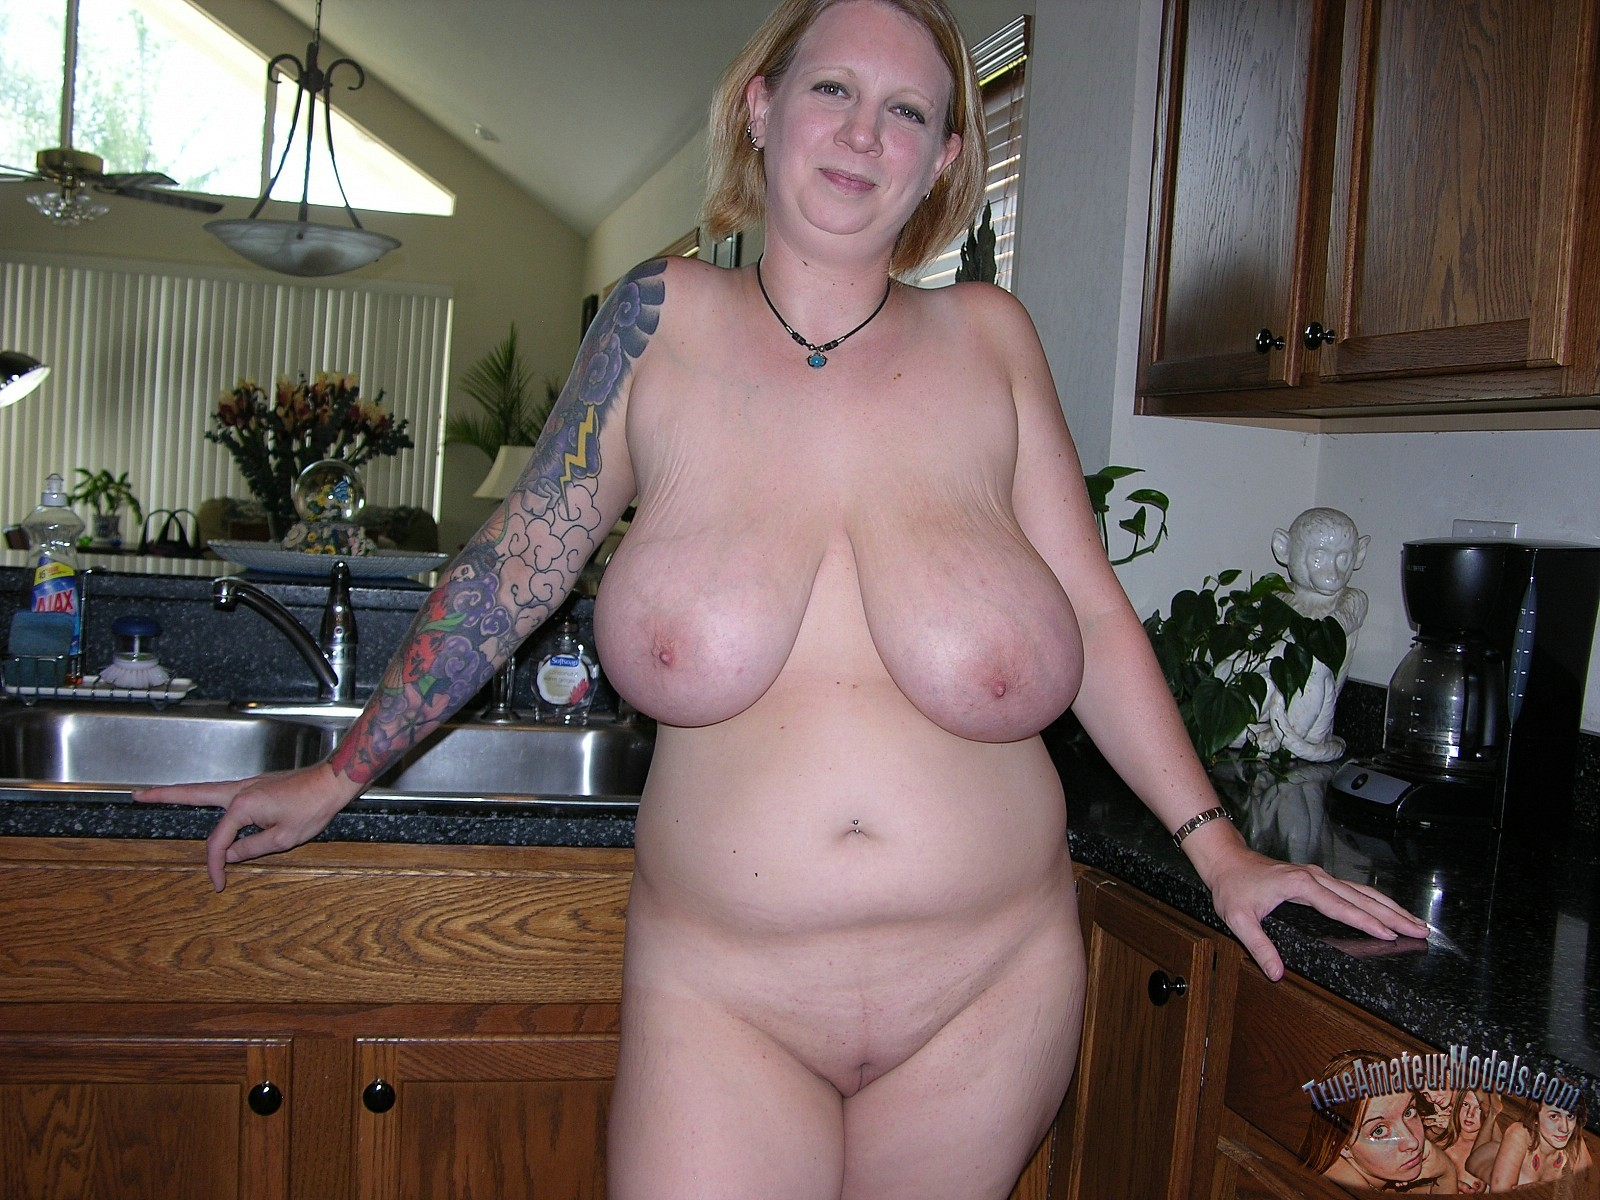 chubby amateur tumblr